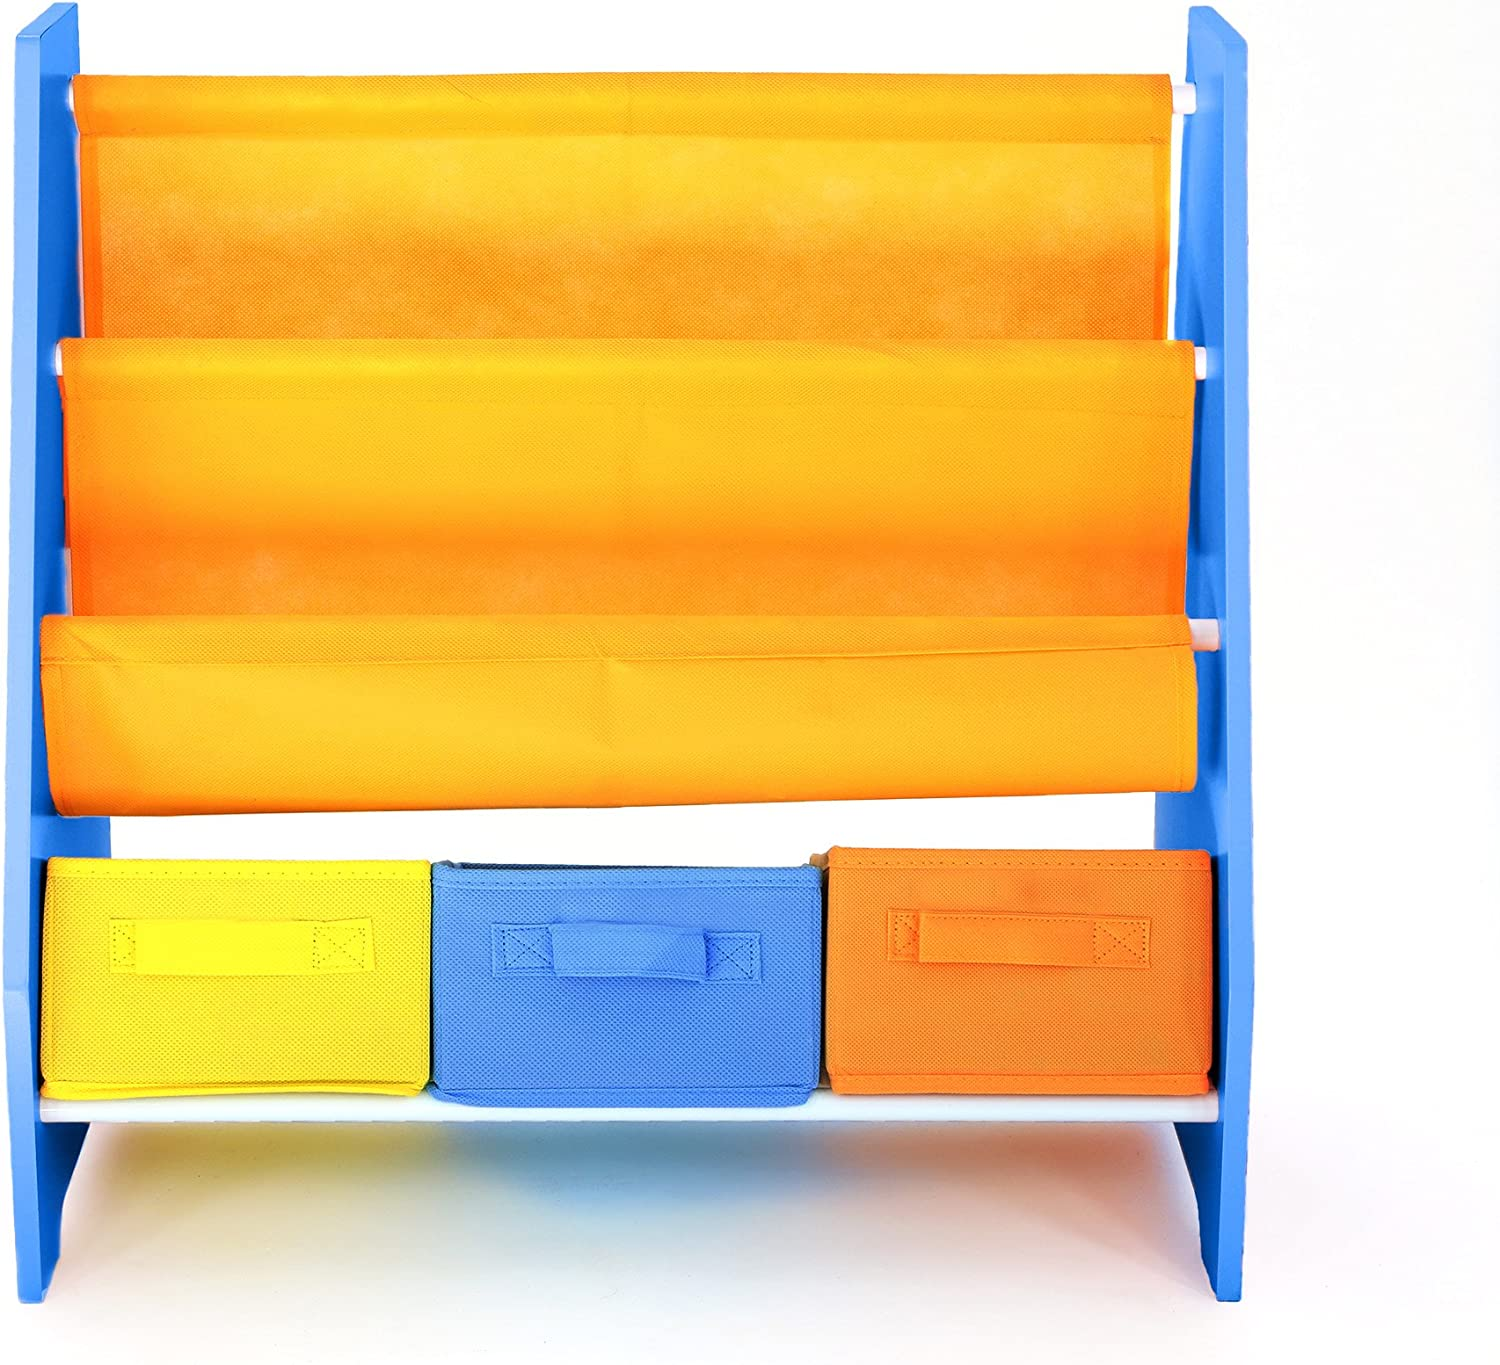 Bebe Style Premium Children's Furniture Wooden Rack Sling Bookcase Shelf for Easy Organization and Storage Easy Assembly